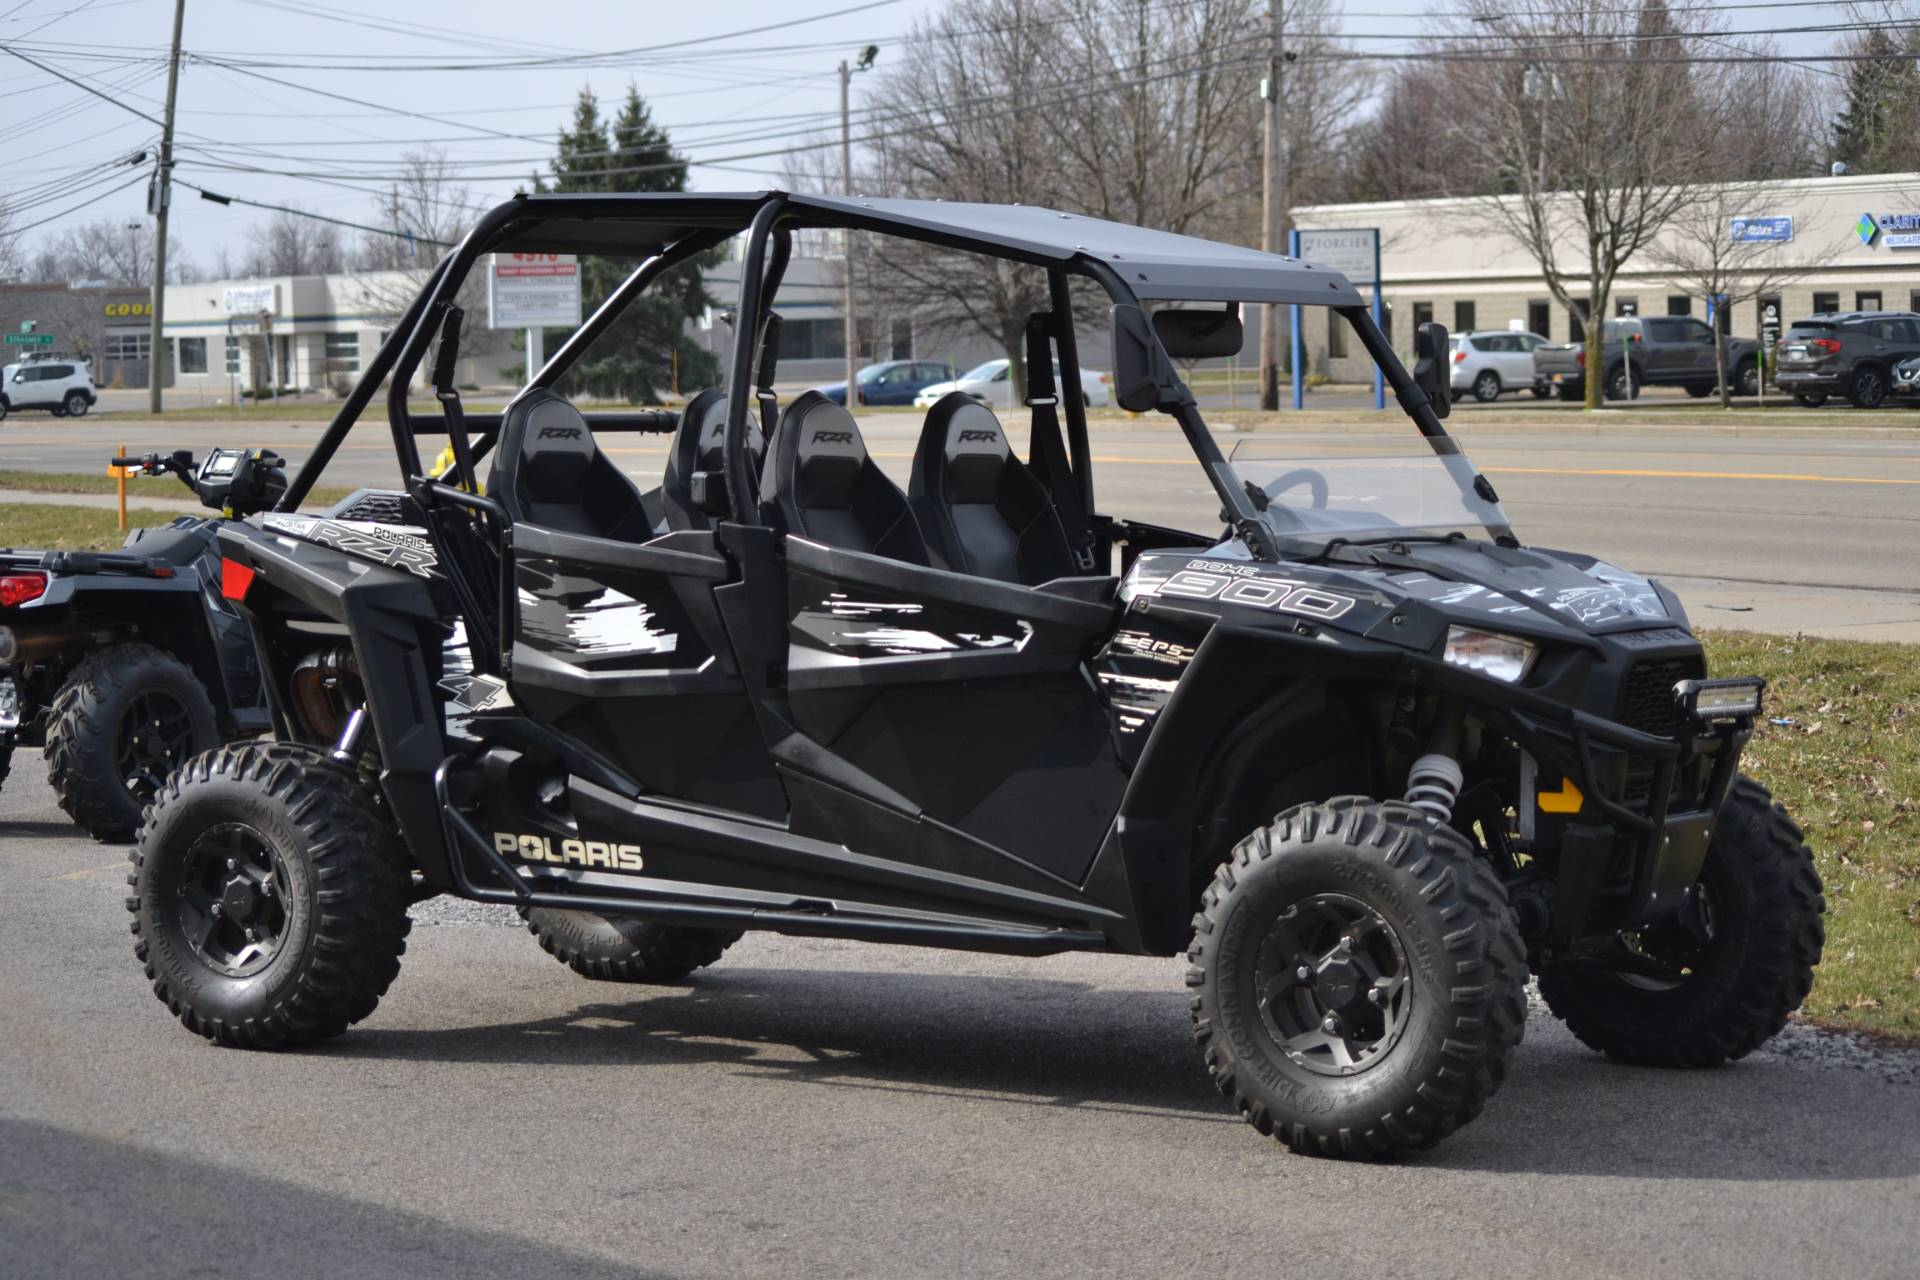 2018 Polaris 2018 POLARIS RZR S4 900 (ELECTRIC POWER STEERING) in Depew, New York - Photo 1